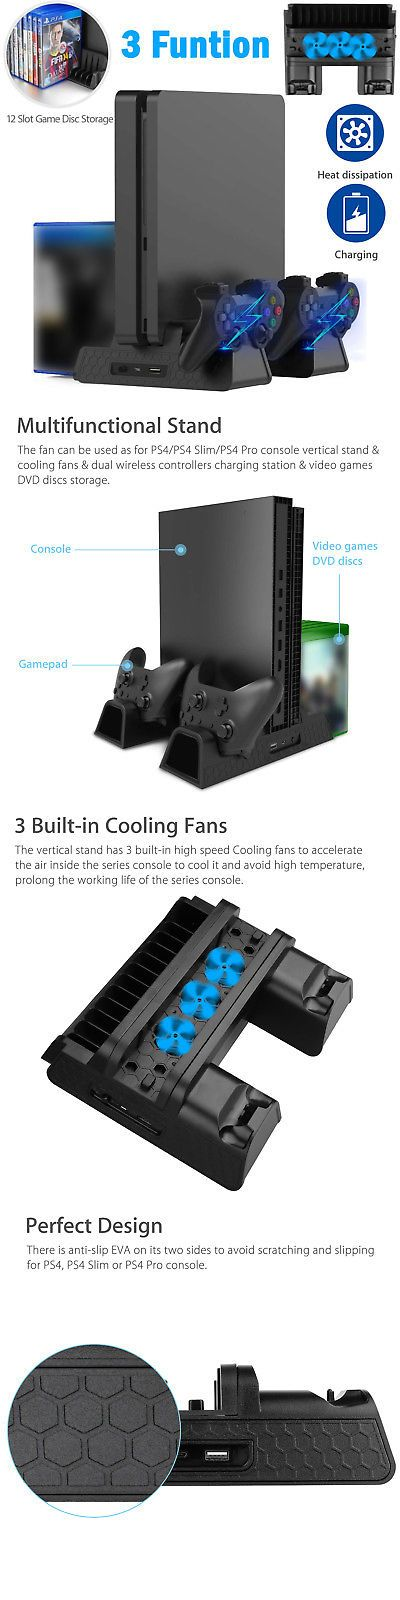 Cooling Devices 171898: For Ps4 Pro Slim Vertical Stand +